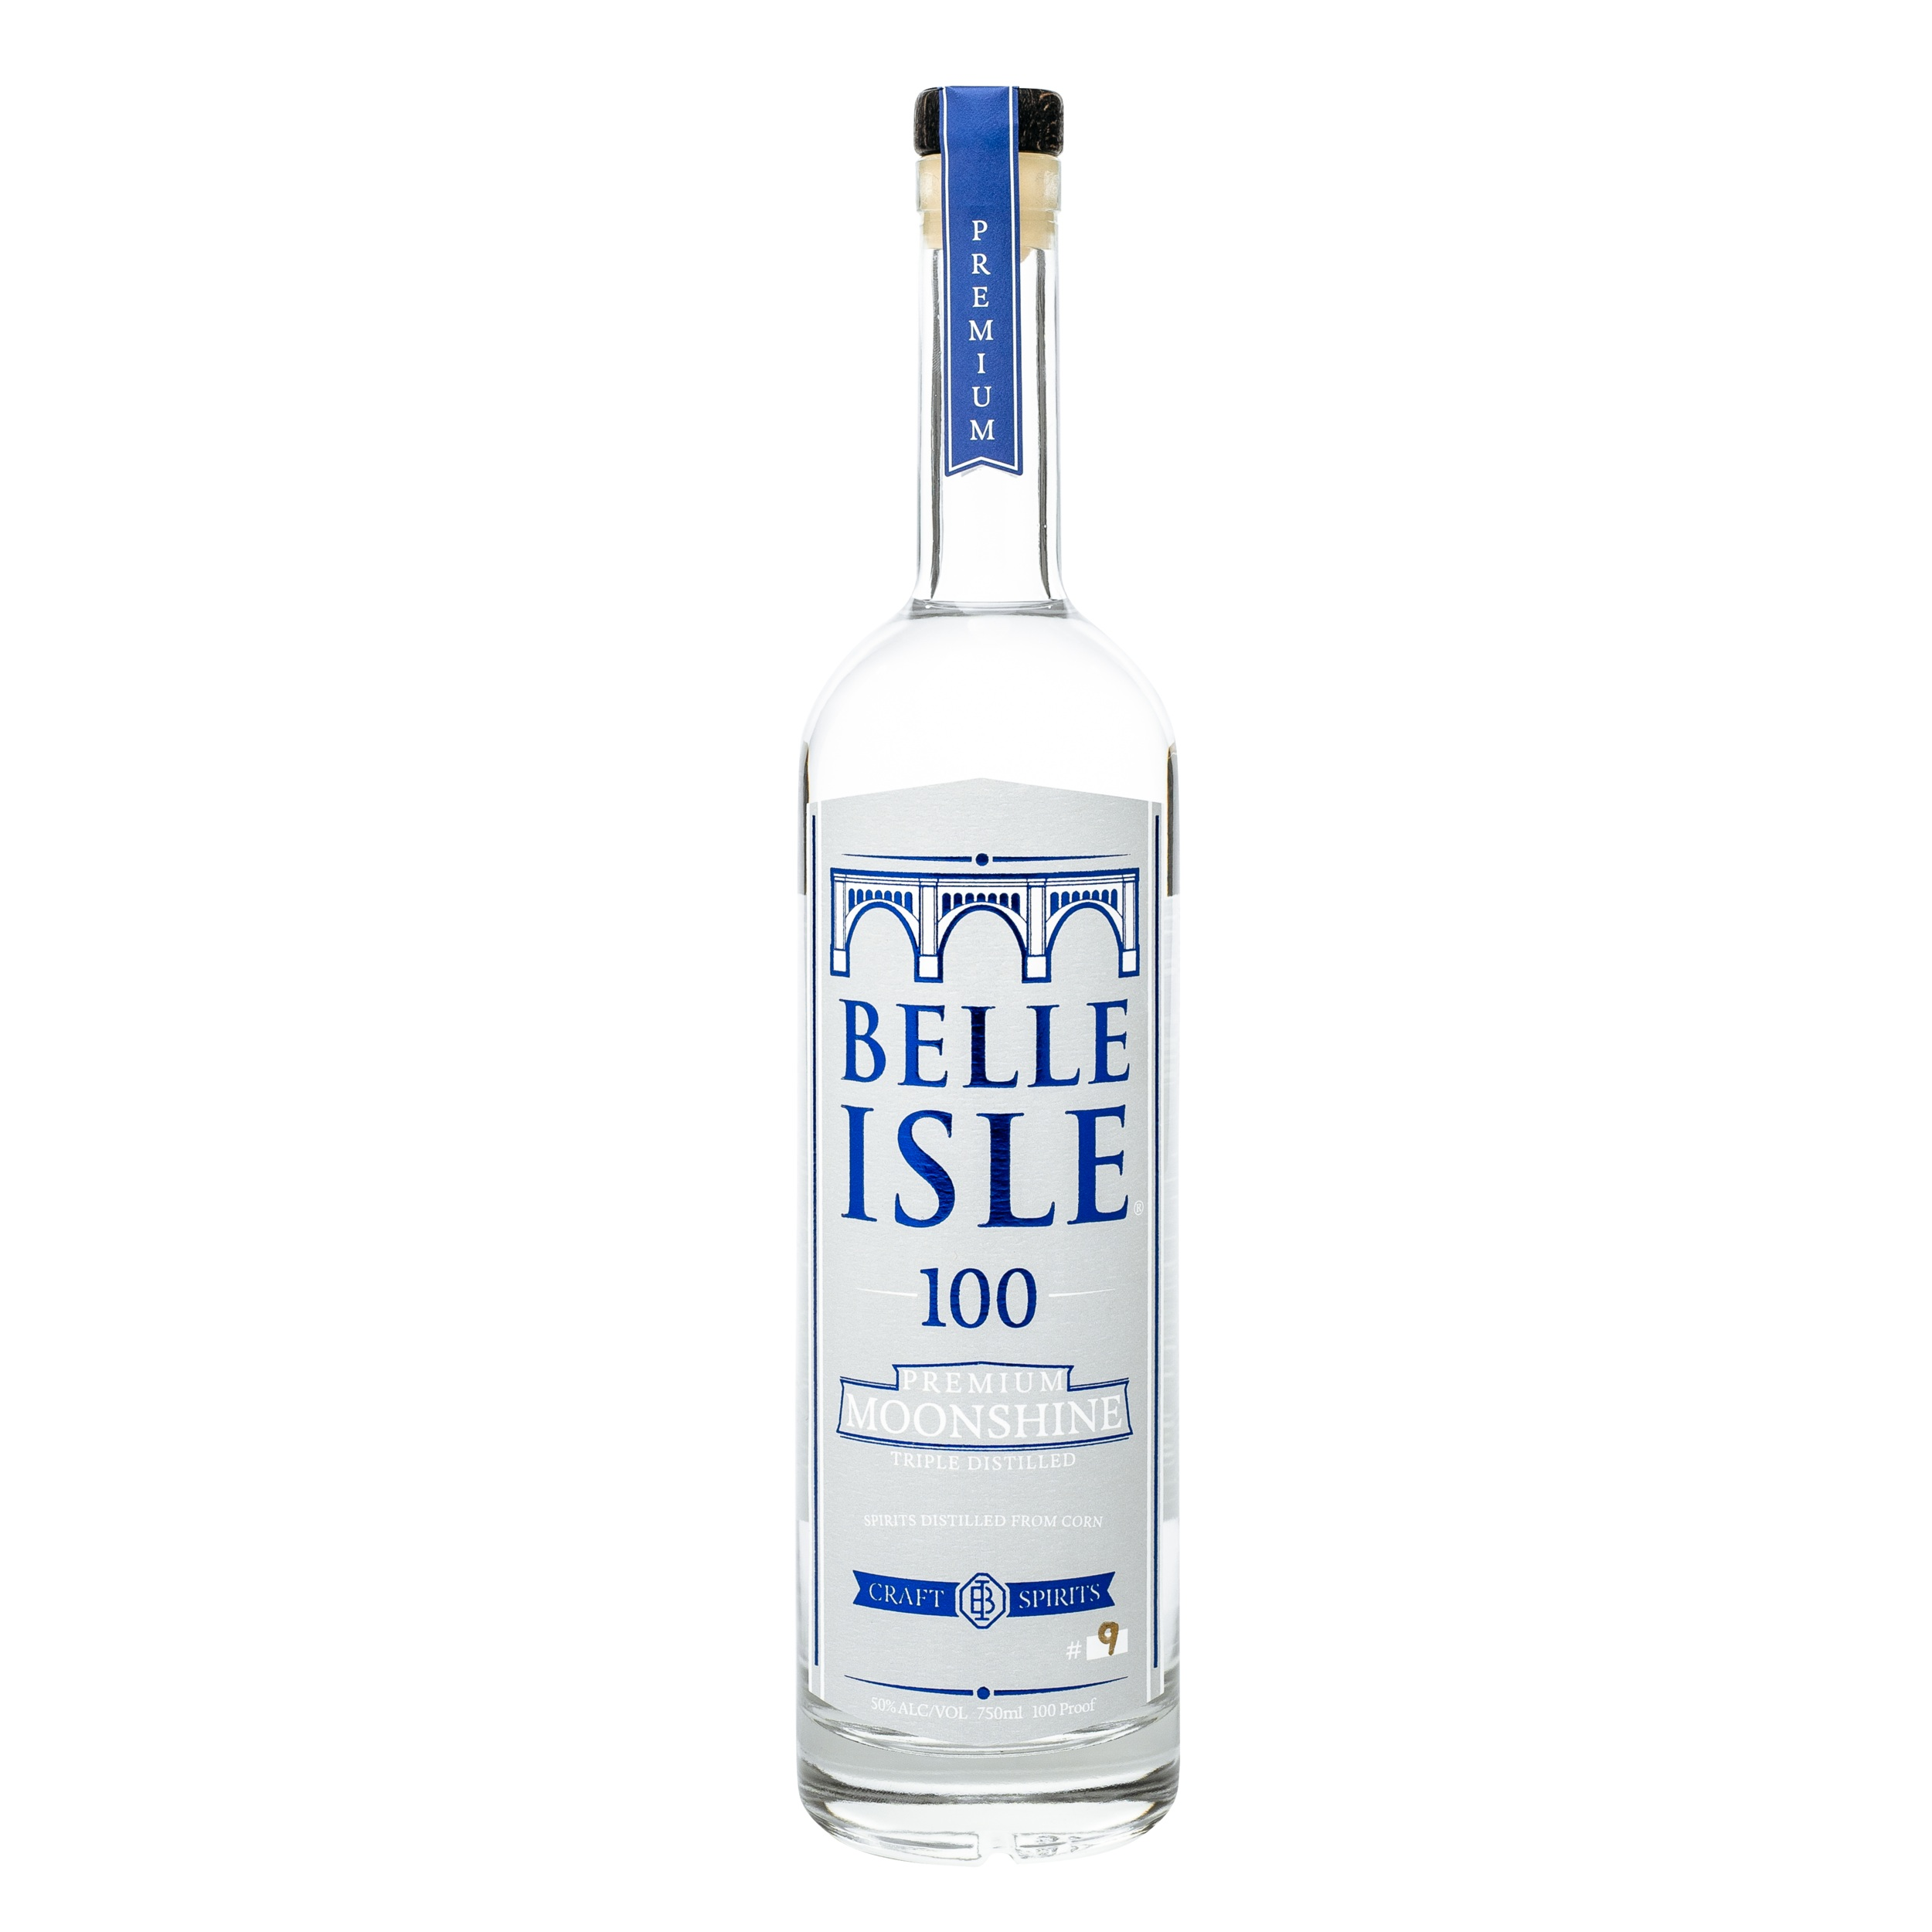 Belle+Isle+Bottle+Shot+-+100+Proof.jpg